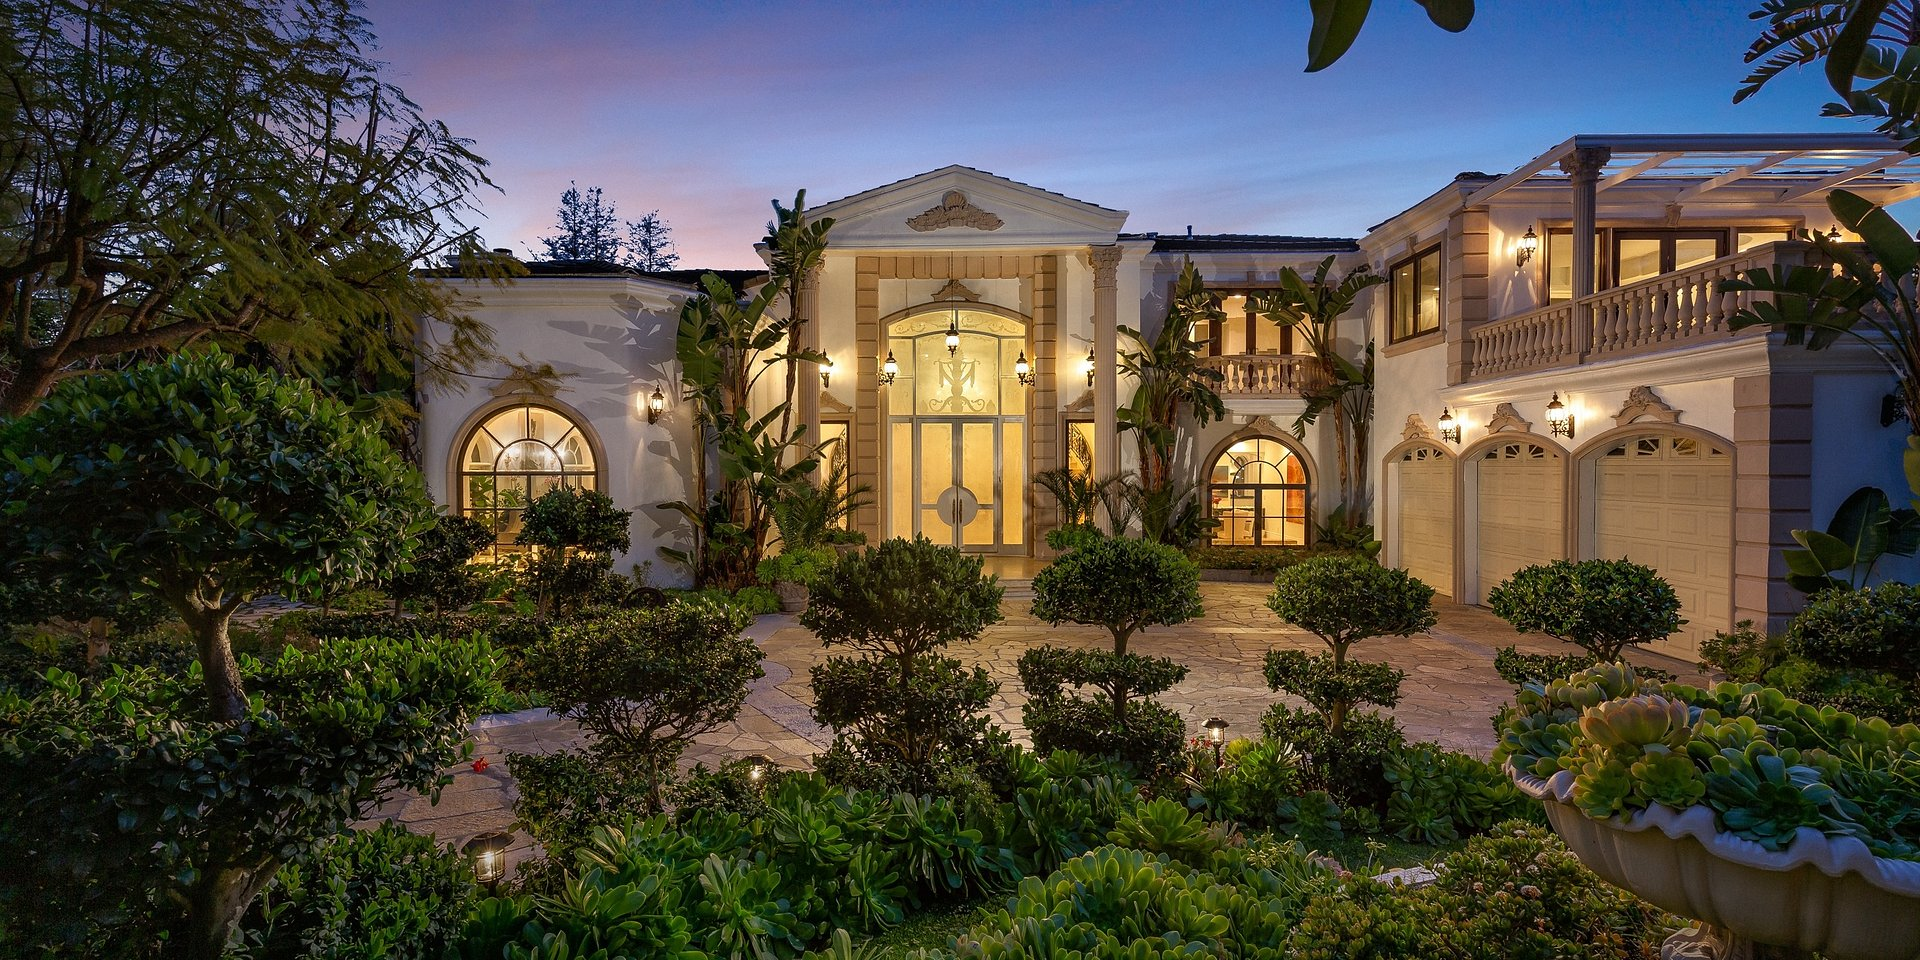 Coldwell Banker Residential Brokerage Lists Los Angeles Property for $6.499 Million